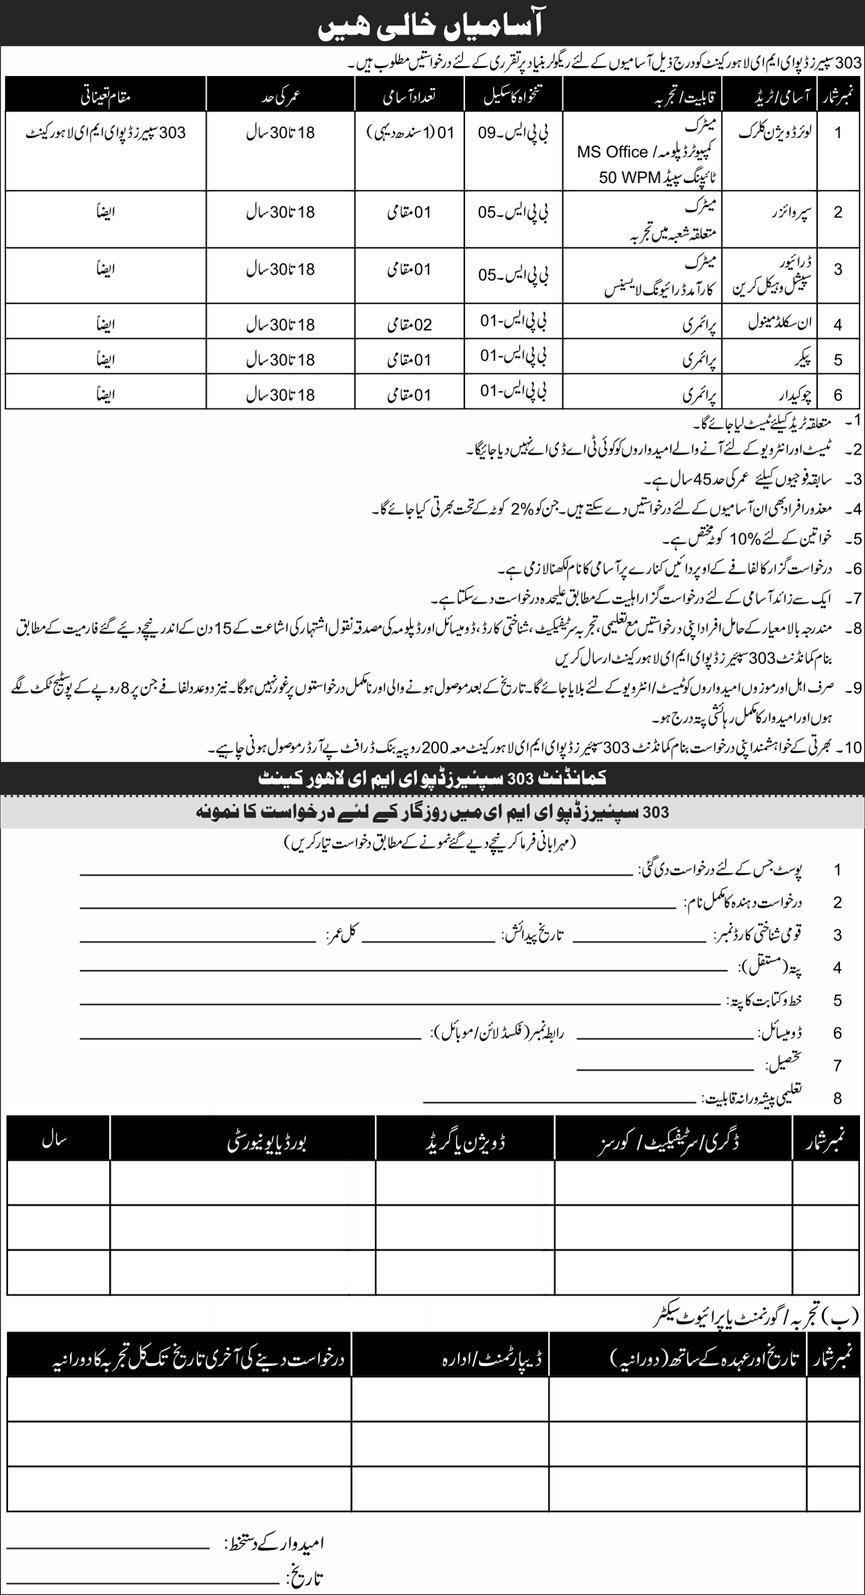 303 Spares Depot EME Lahore Cantt Jobs